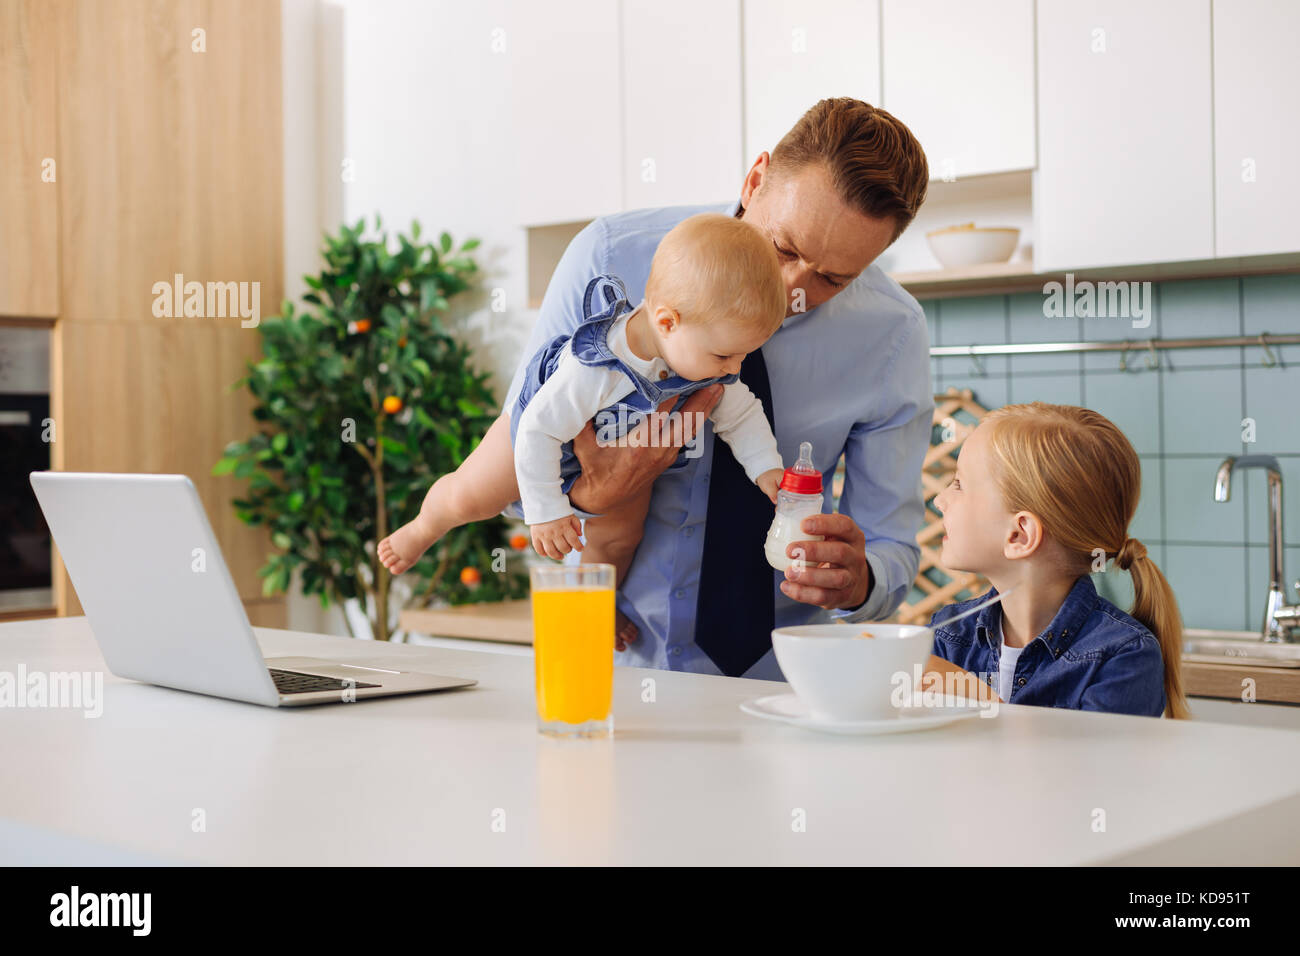 Pleasant handsome man holding a bottle with milk - Stock Image